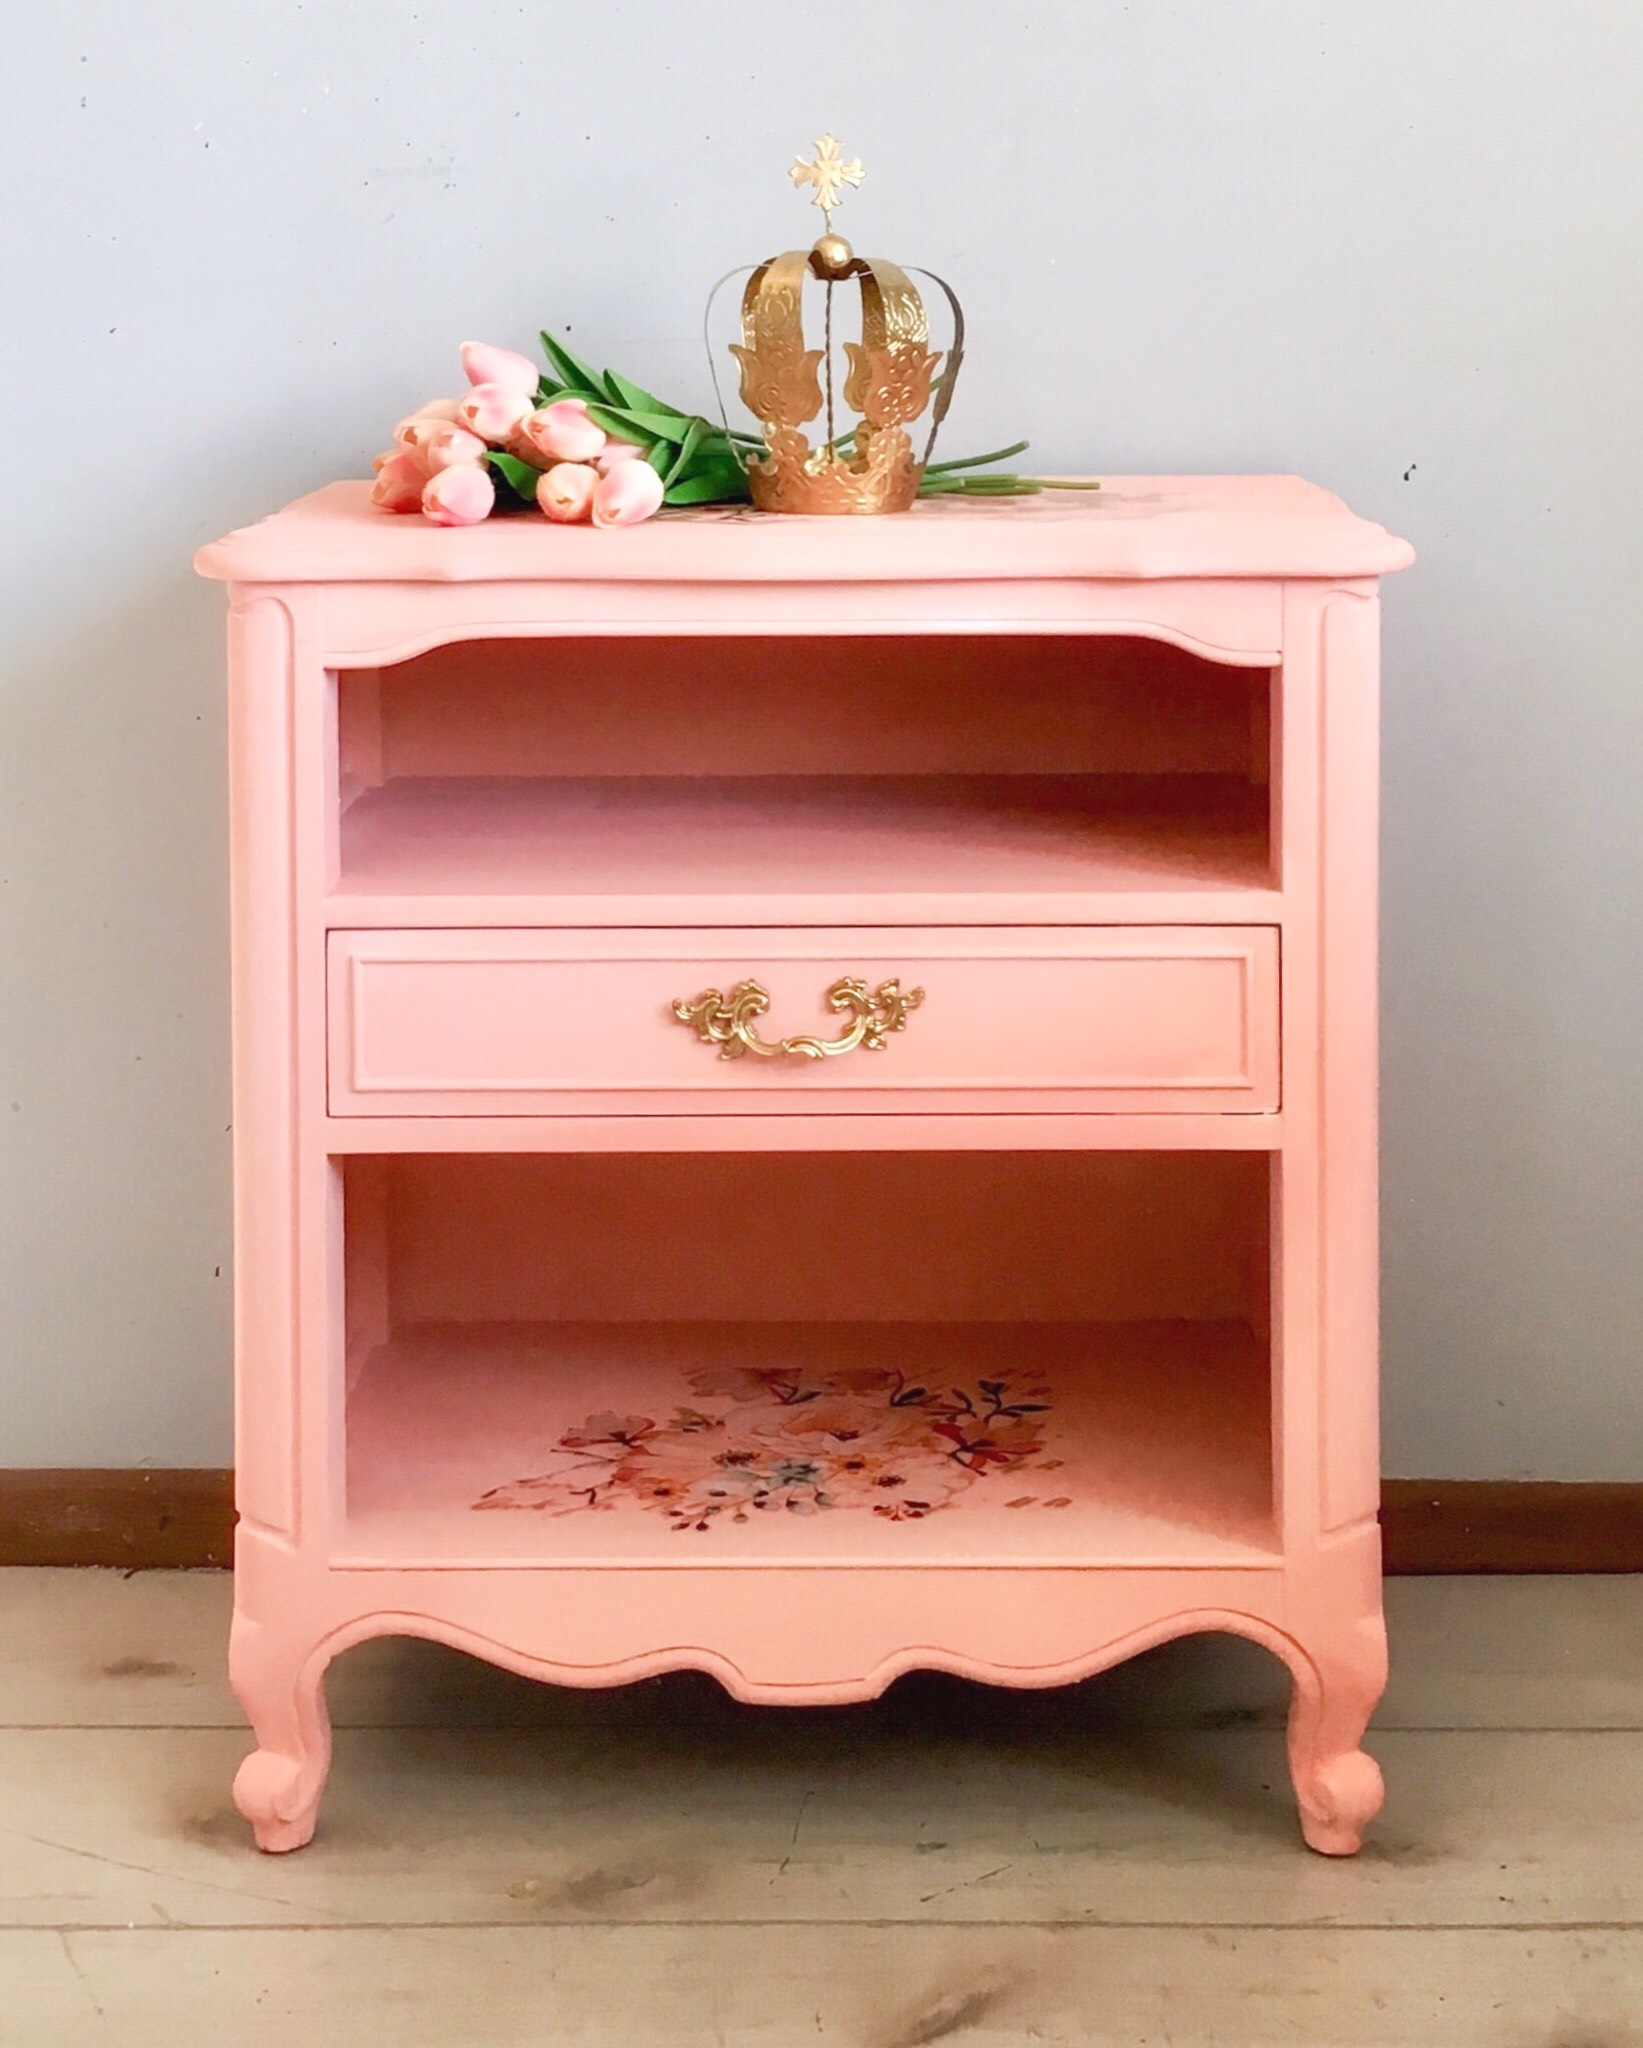 This little table was painted in an adorable shade of Pink and then given a bit of character using the Rose Celebration Decor Transfer™. The coolest thing about this is- she used leftover pieces from her French Provincial dresser…isn't it great when you get a little more bang for your buck?